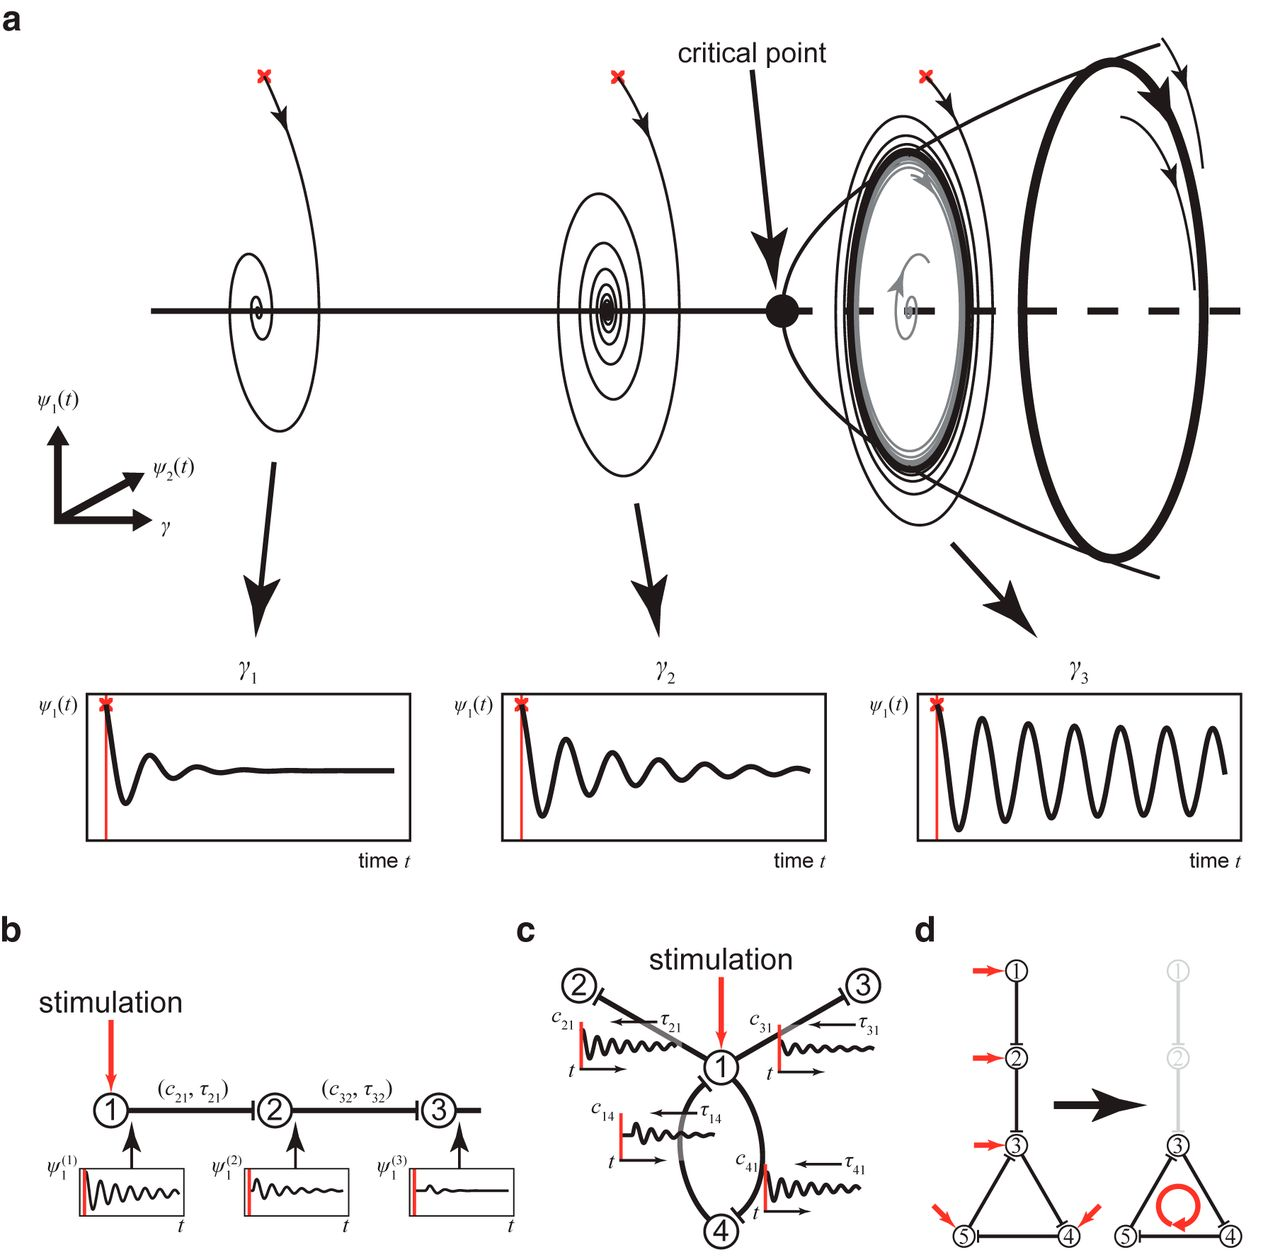 Selective Activation of Resting-State Networks following